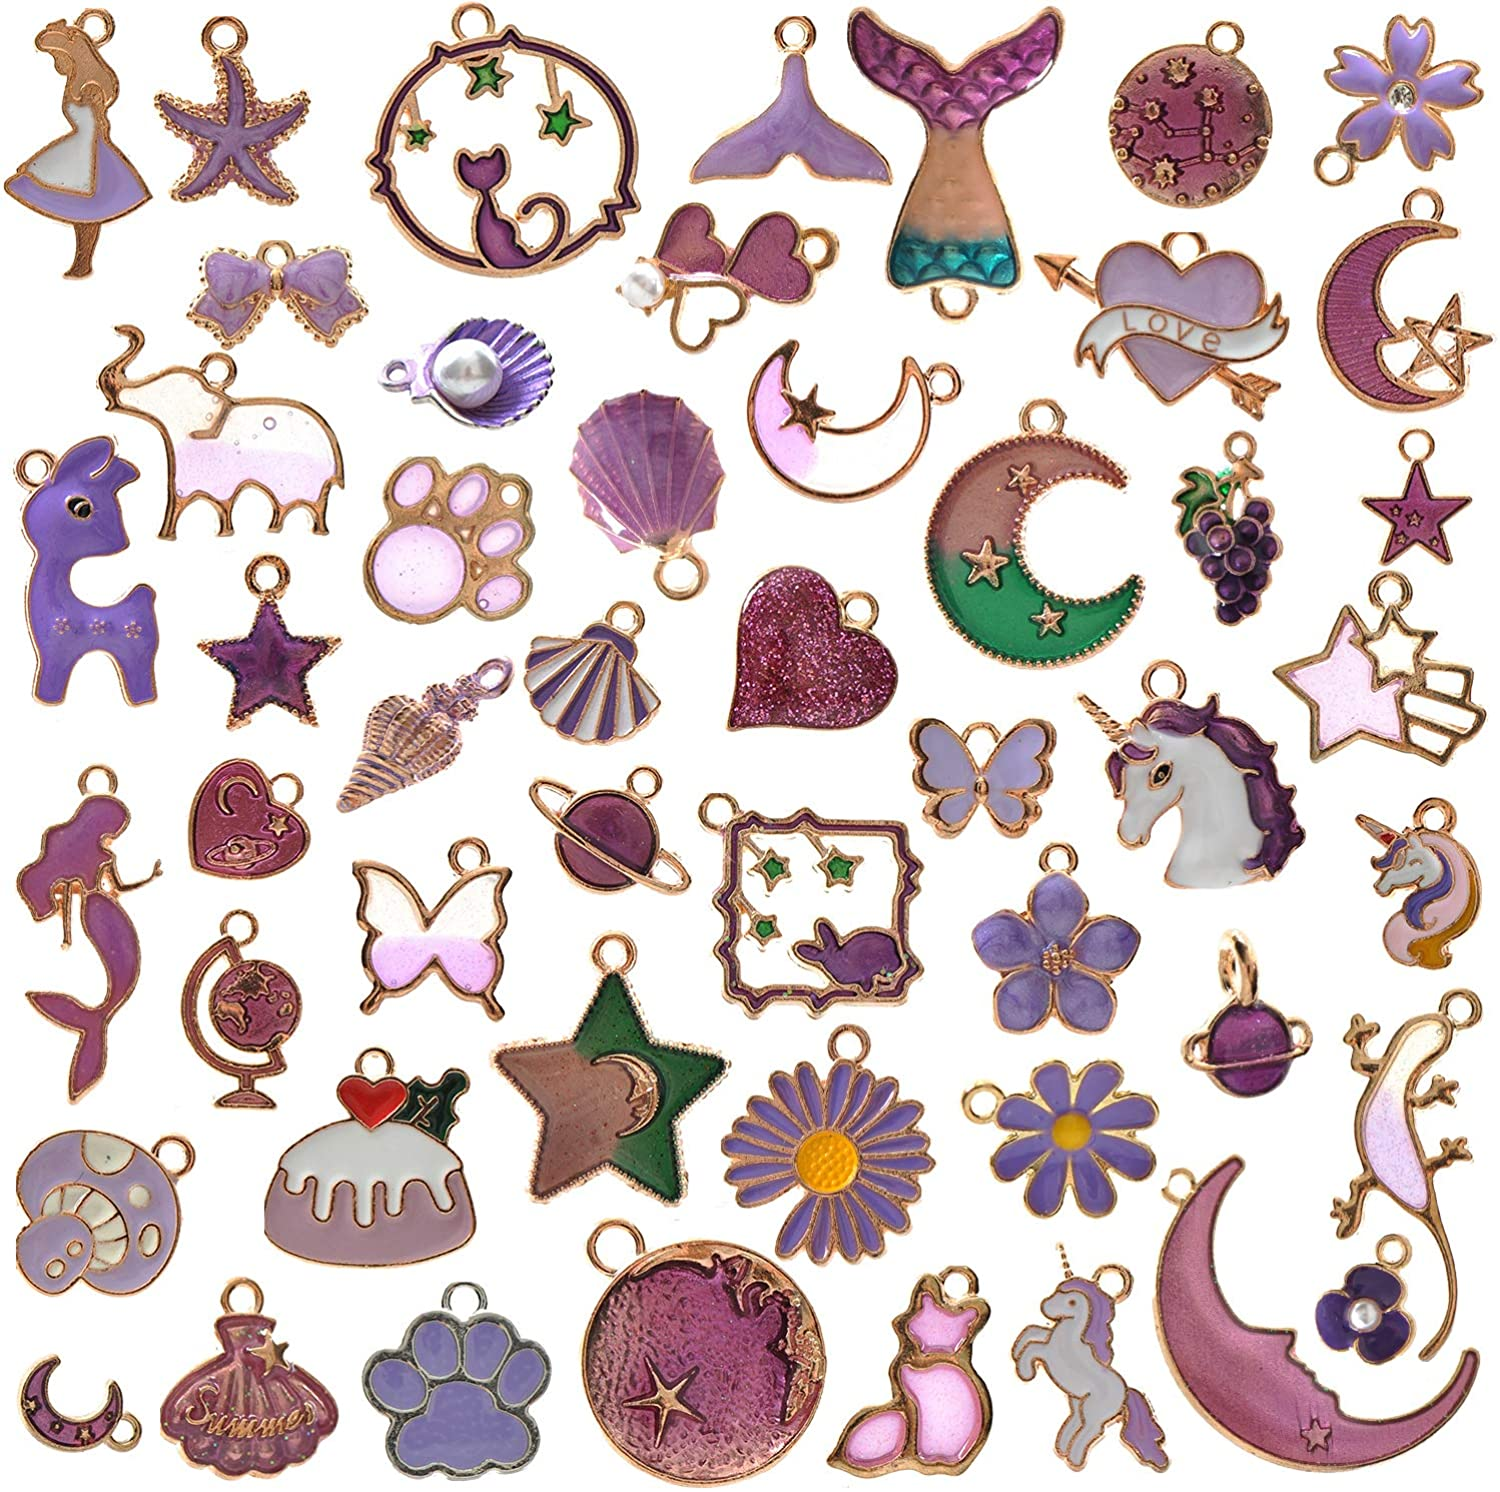 YUEAON 50pcs Enamel Charms for Max 74% OFF Supplies Jewelry B Earring Max 61% OFF Making